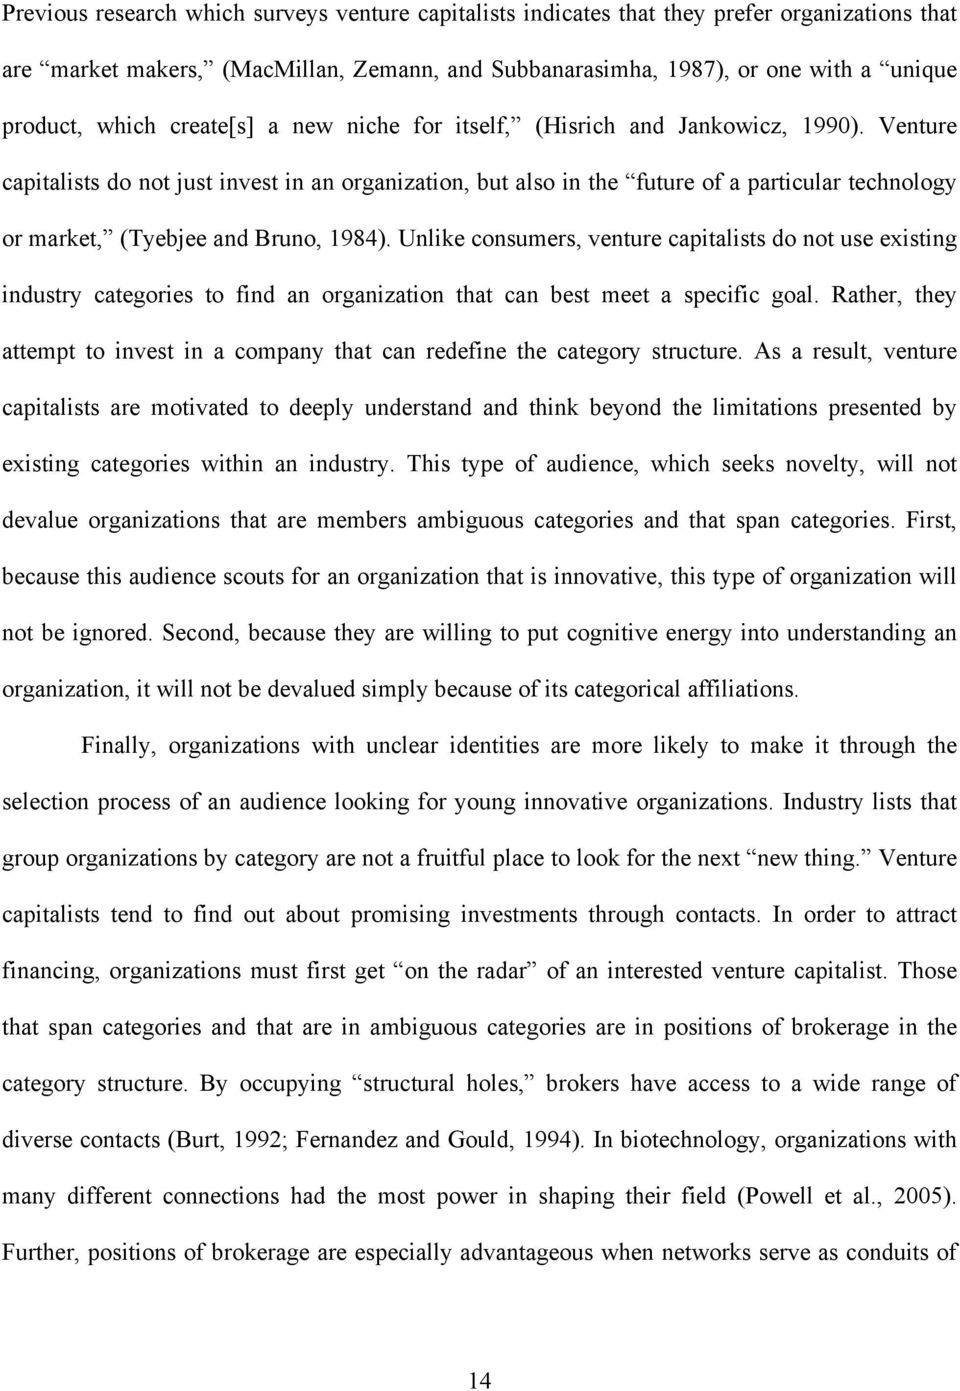 Venture capitalists do not just invest in an organization, but also in the future of a particular technology or market, (Tyebjee and Bruno, 1984).